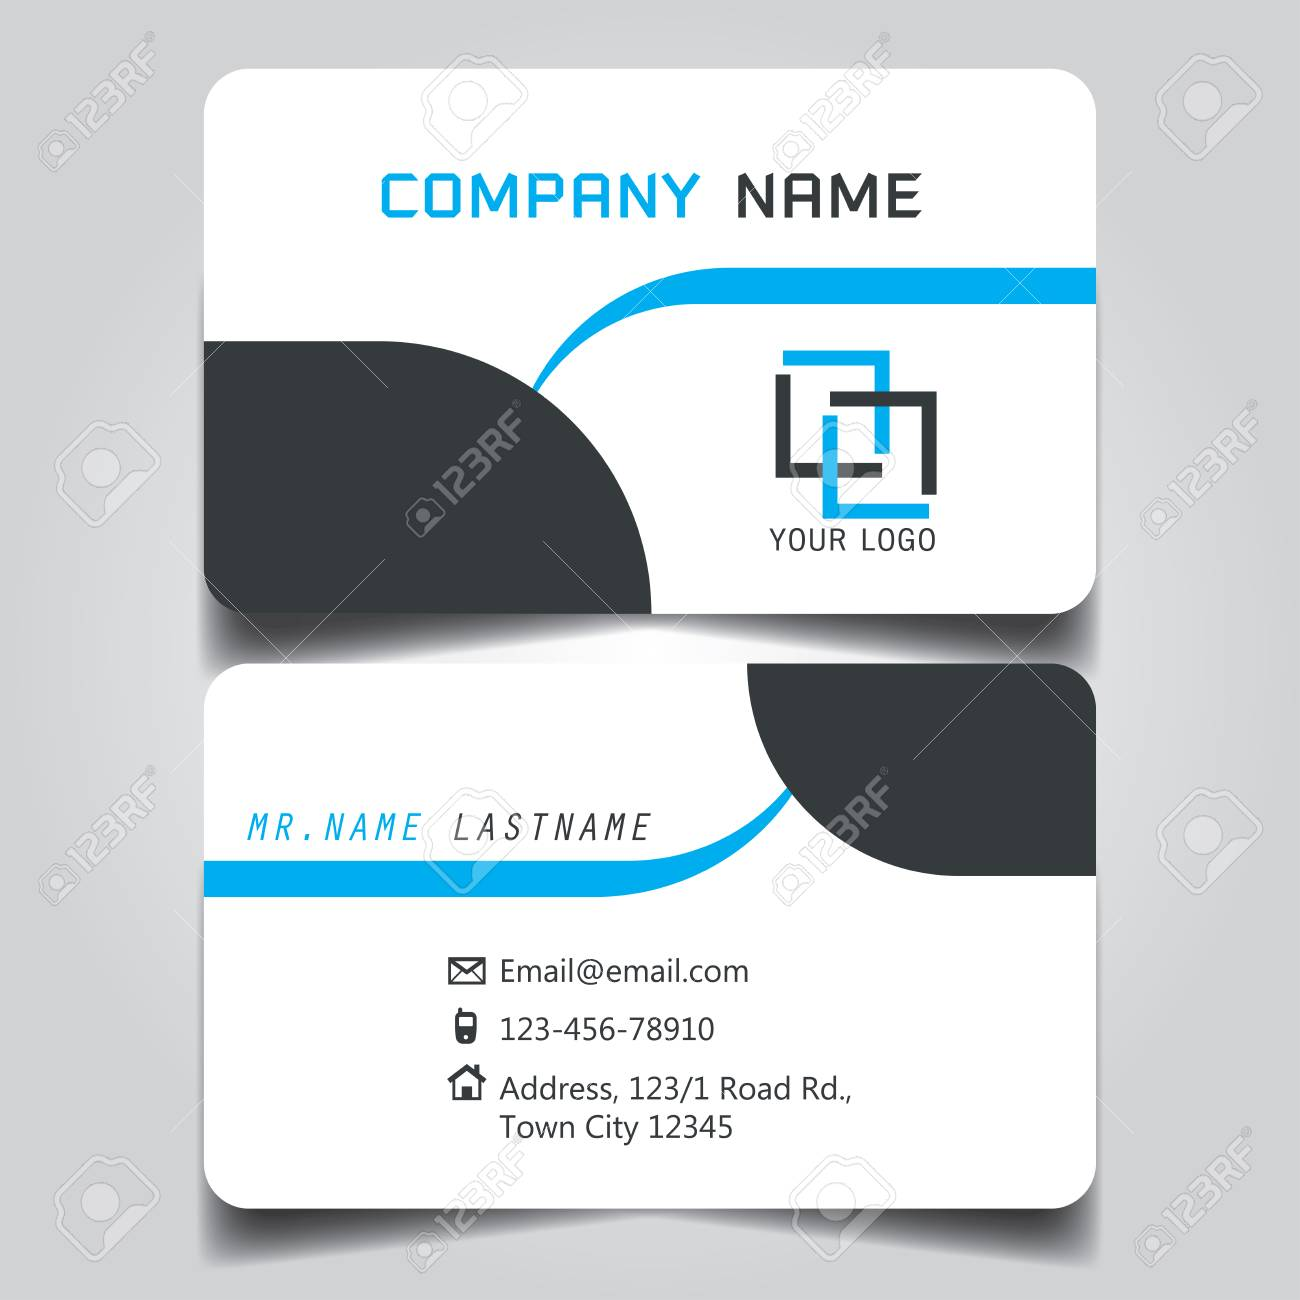 standard size of business card